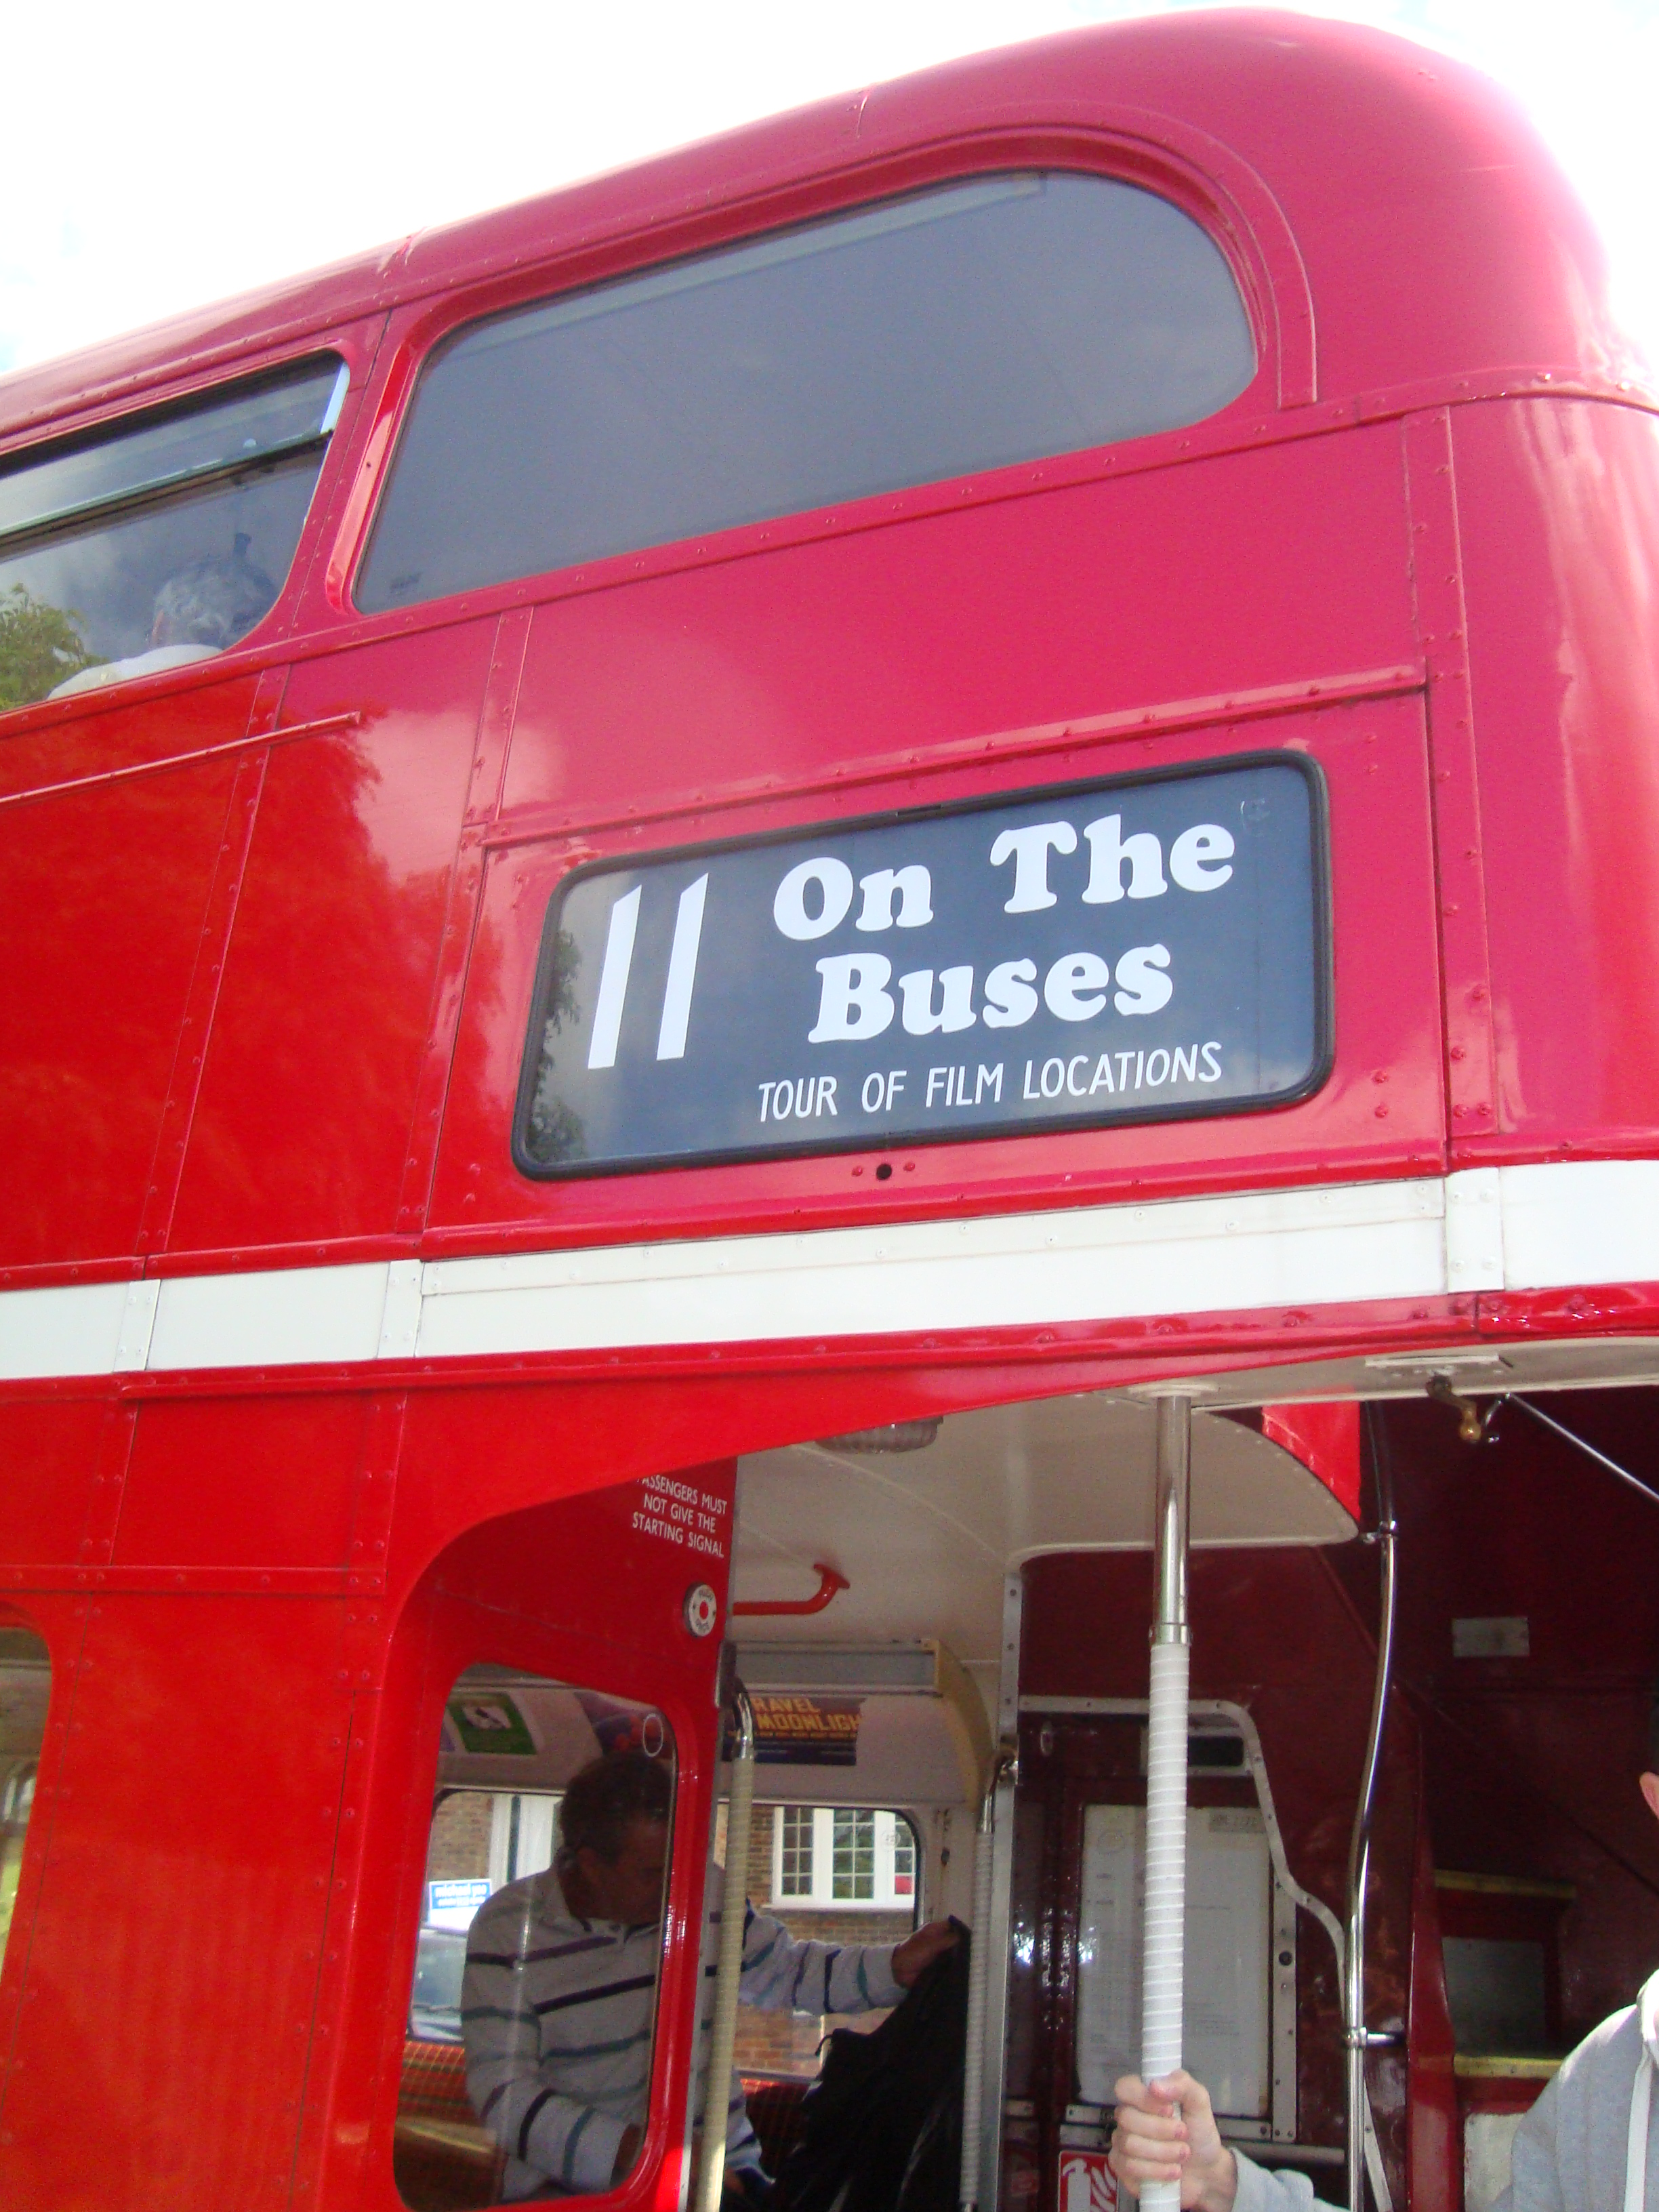 On The Buses Rides Again 2011 032 - Copy.JPG